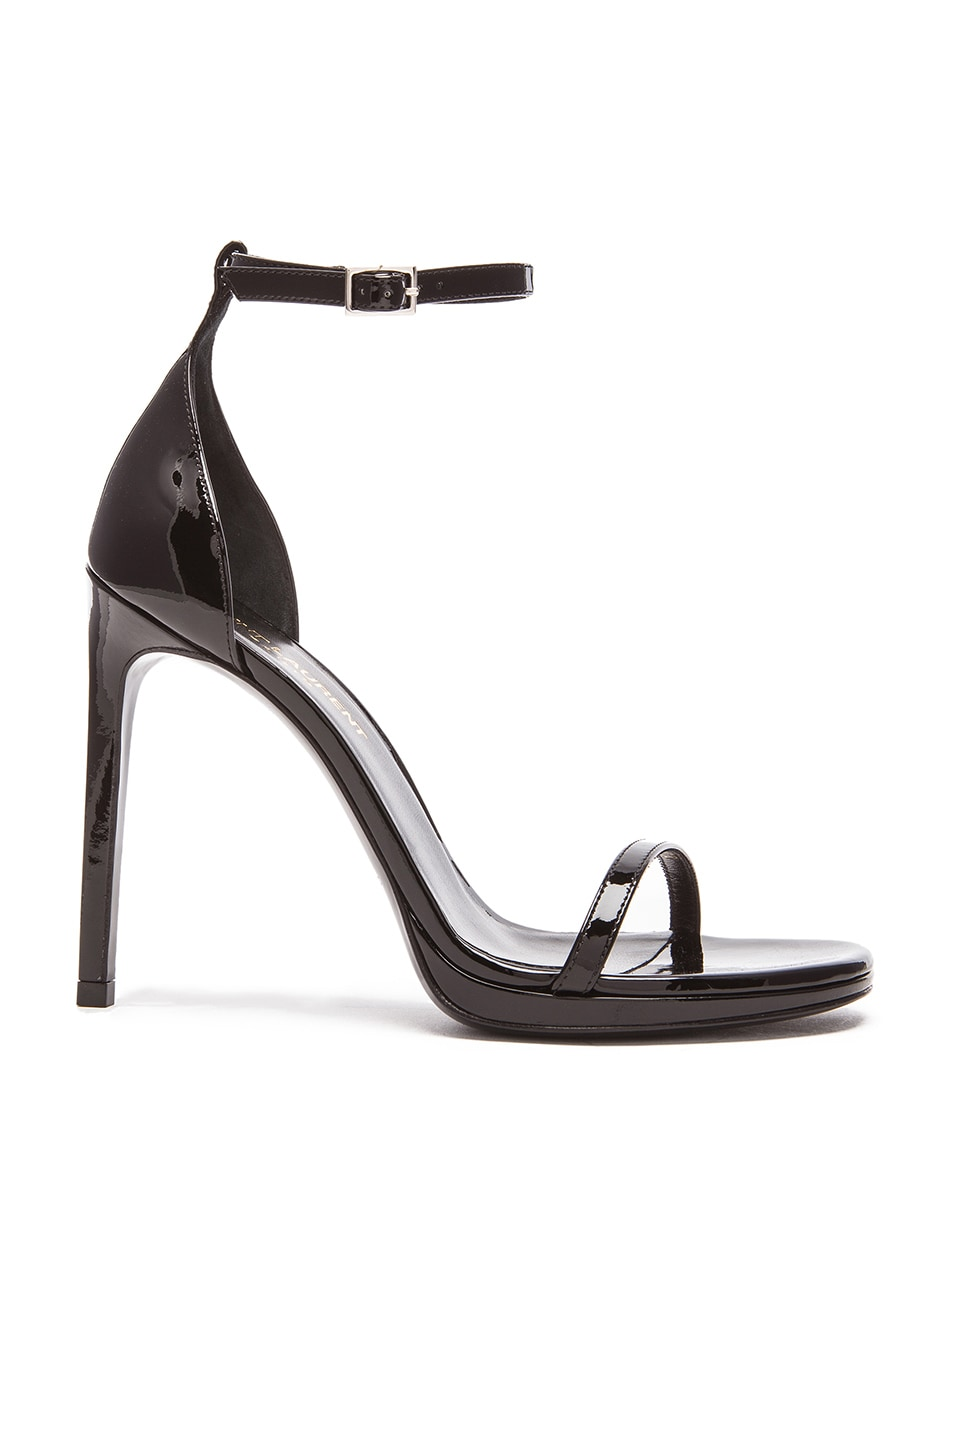 Image 1 of Saint Laurent Jane Patent Leather Sandals in Black